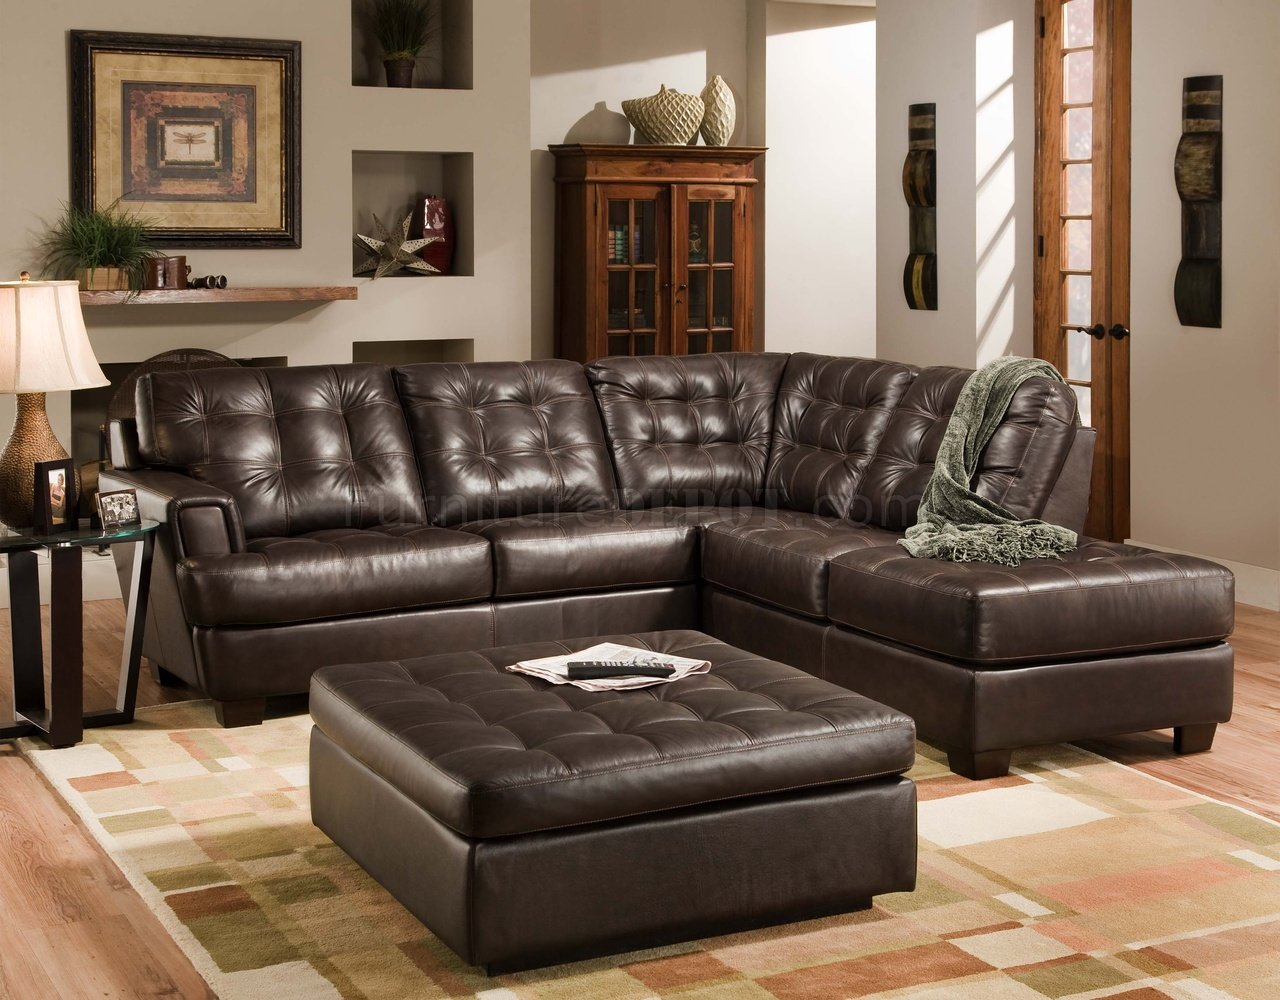 Brown Tufted Top Grain Italian Leather Modern Sectional Sofa